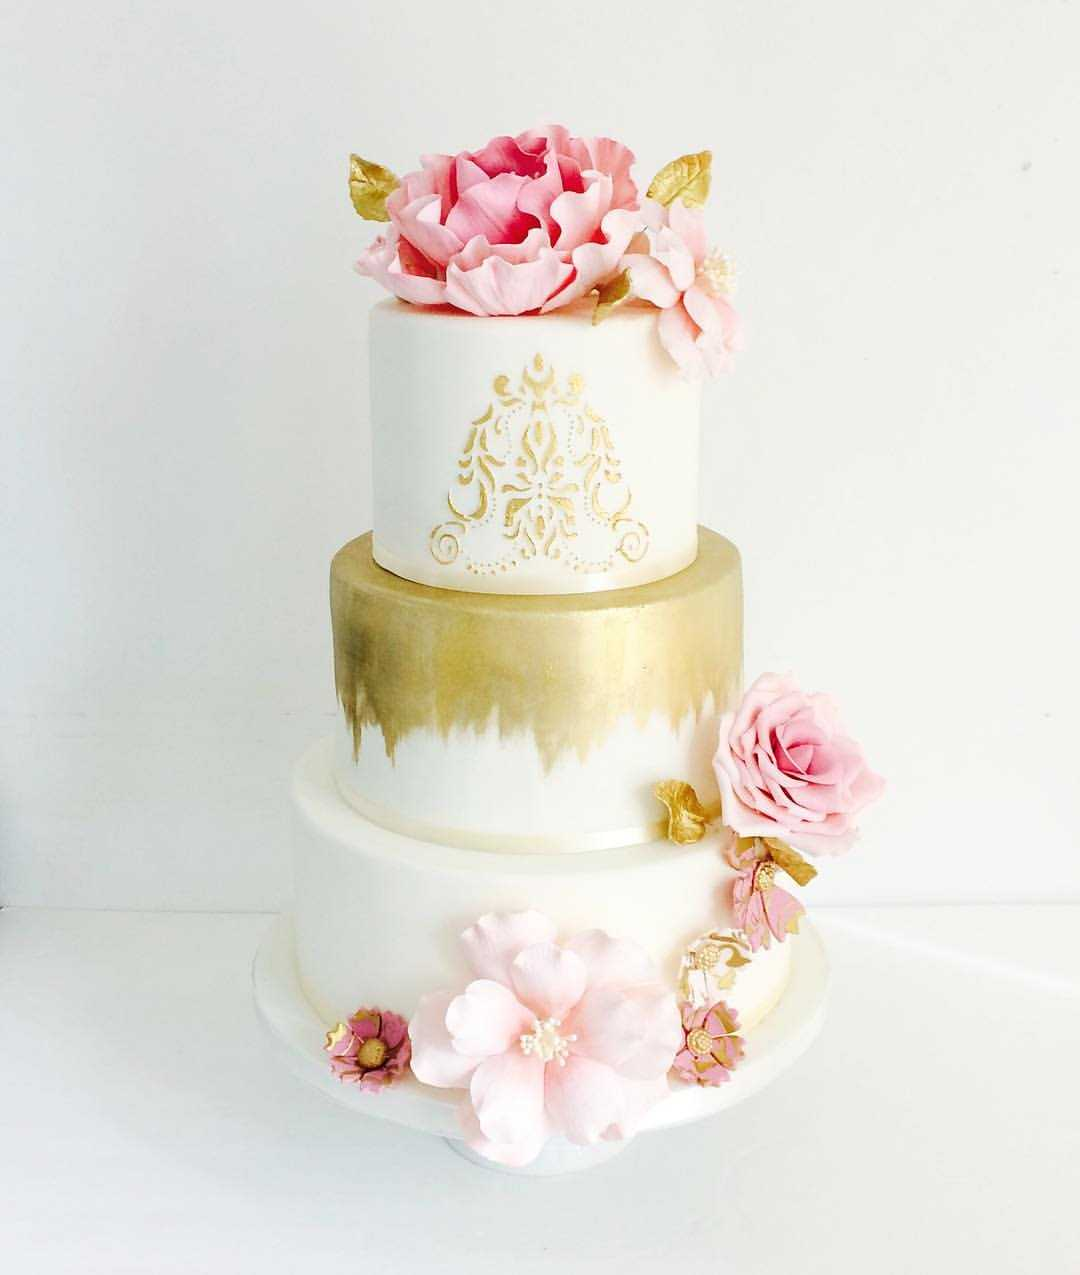 Ivory wedding cake with gold drip and pink sugar roses